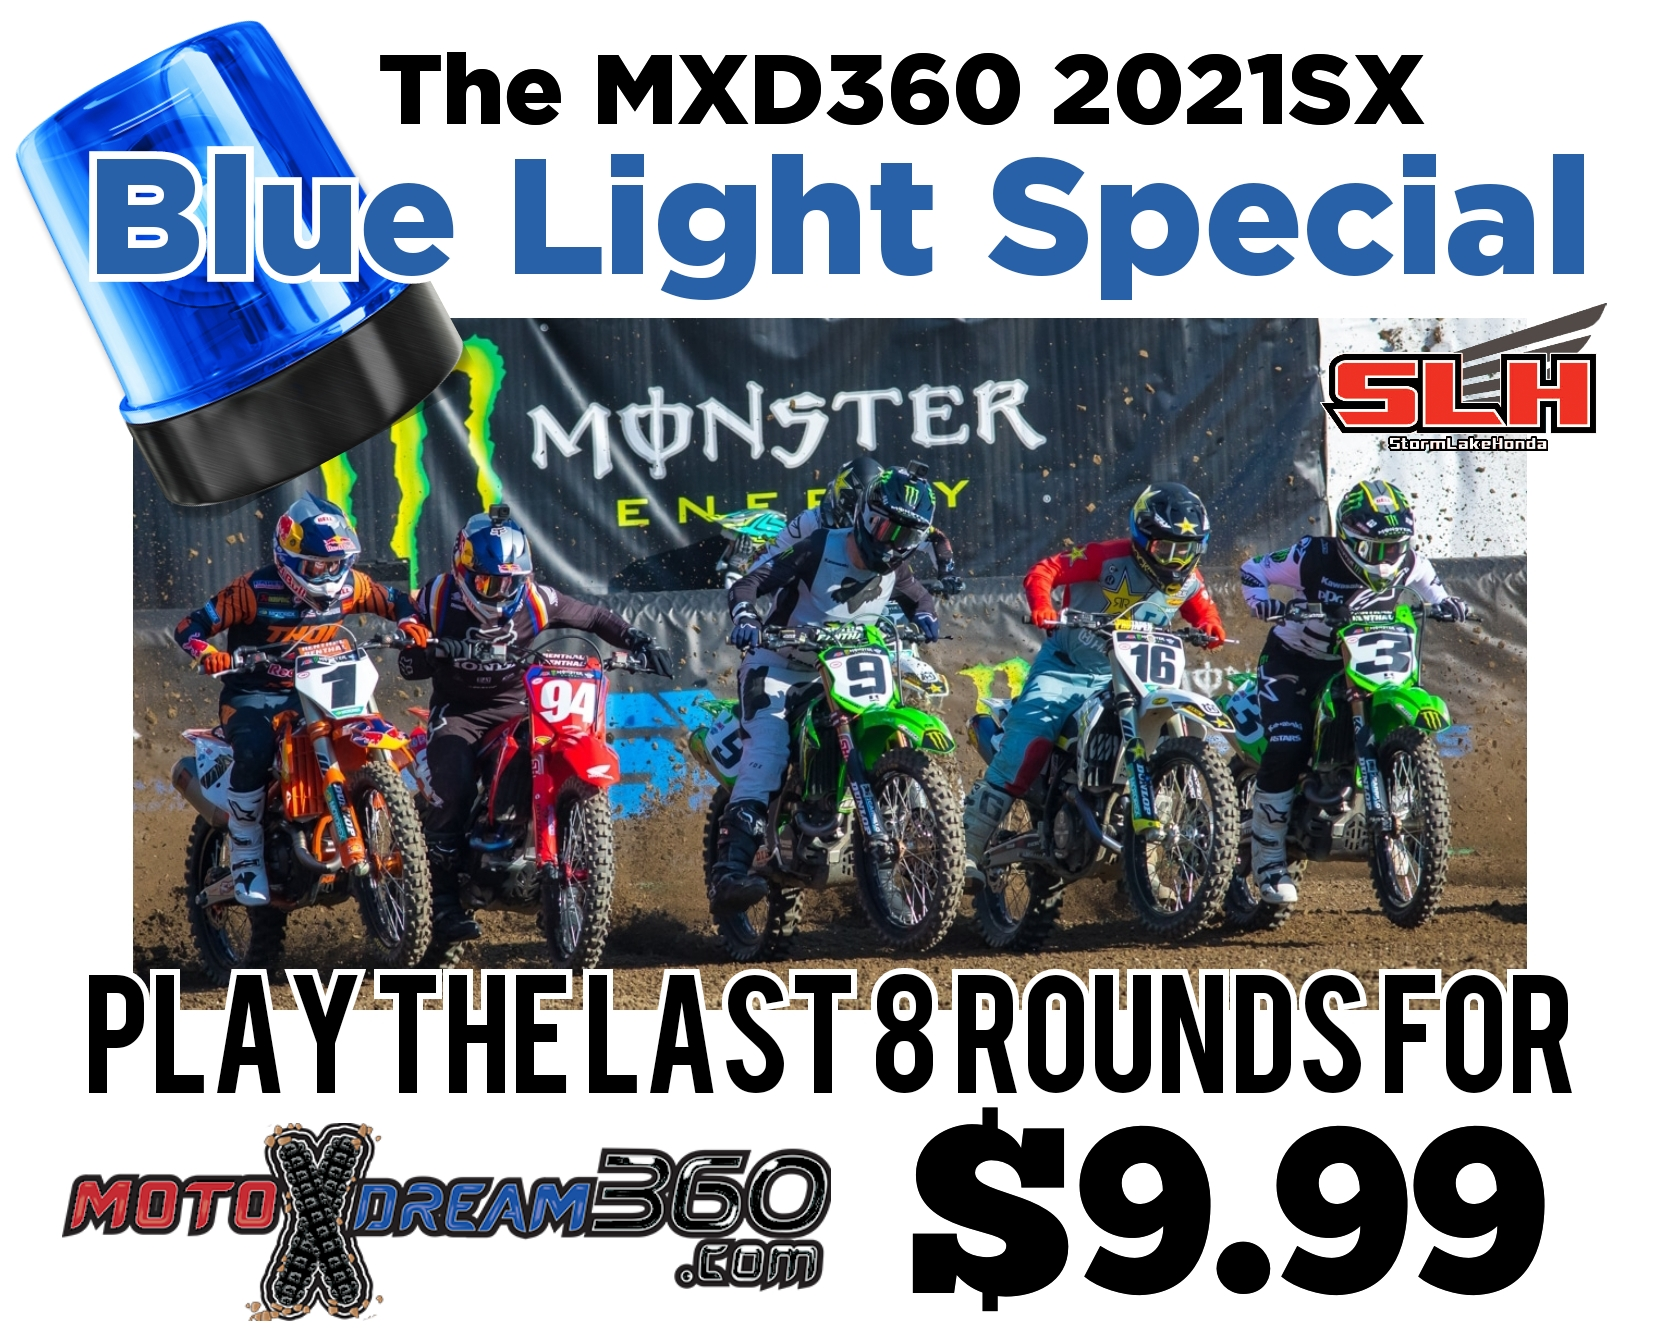 JOIN Storm Lake Honda 2021SX for $9.99